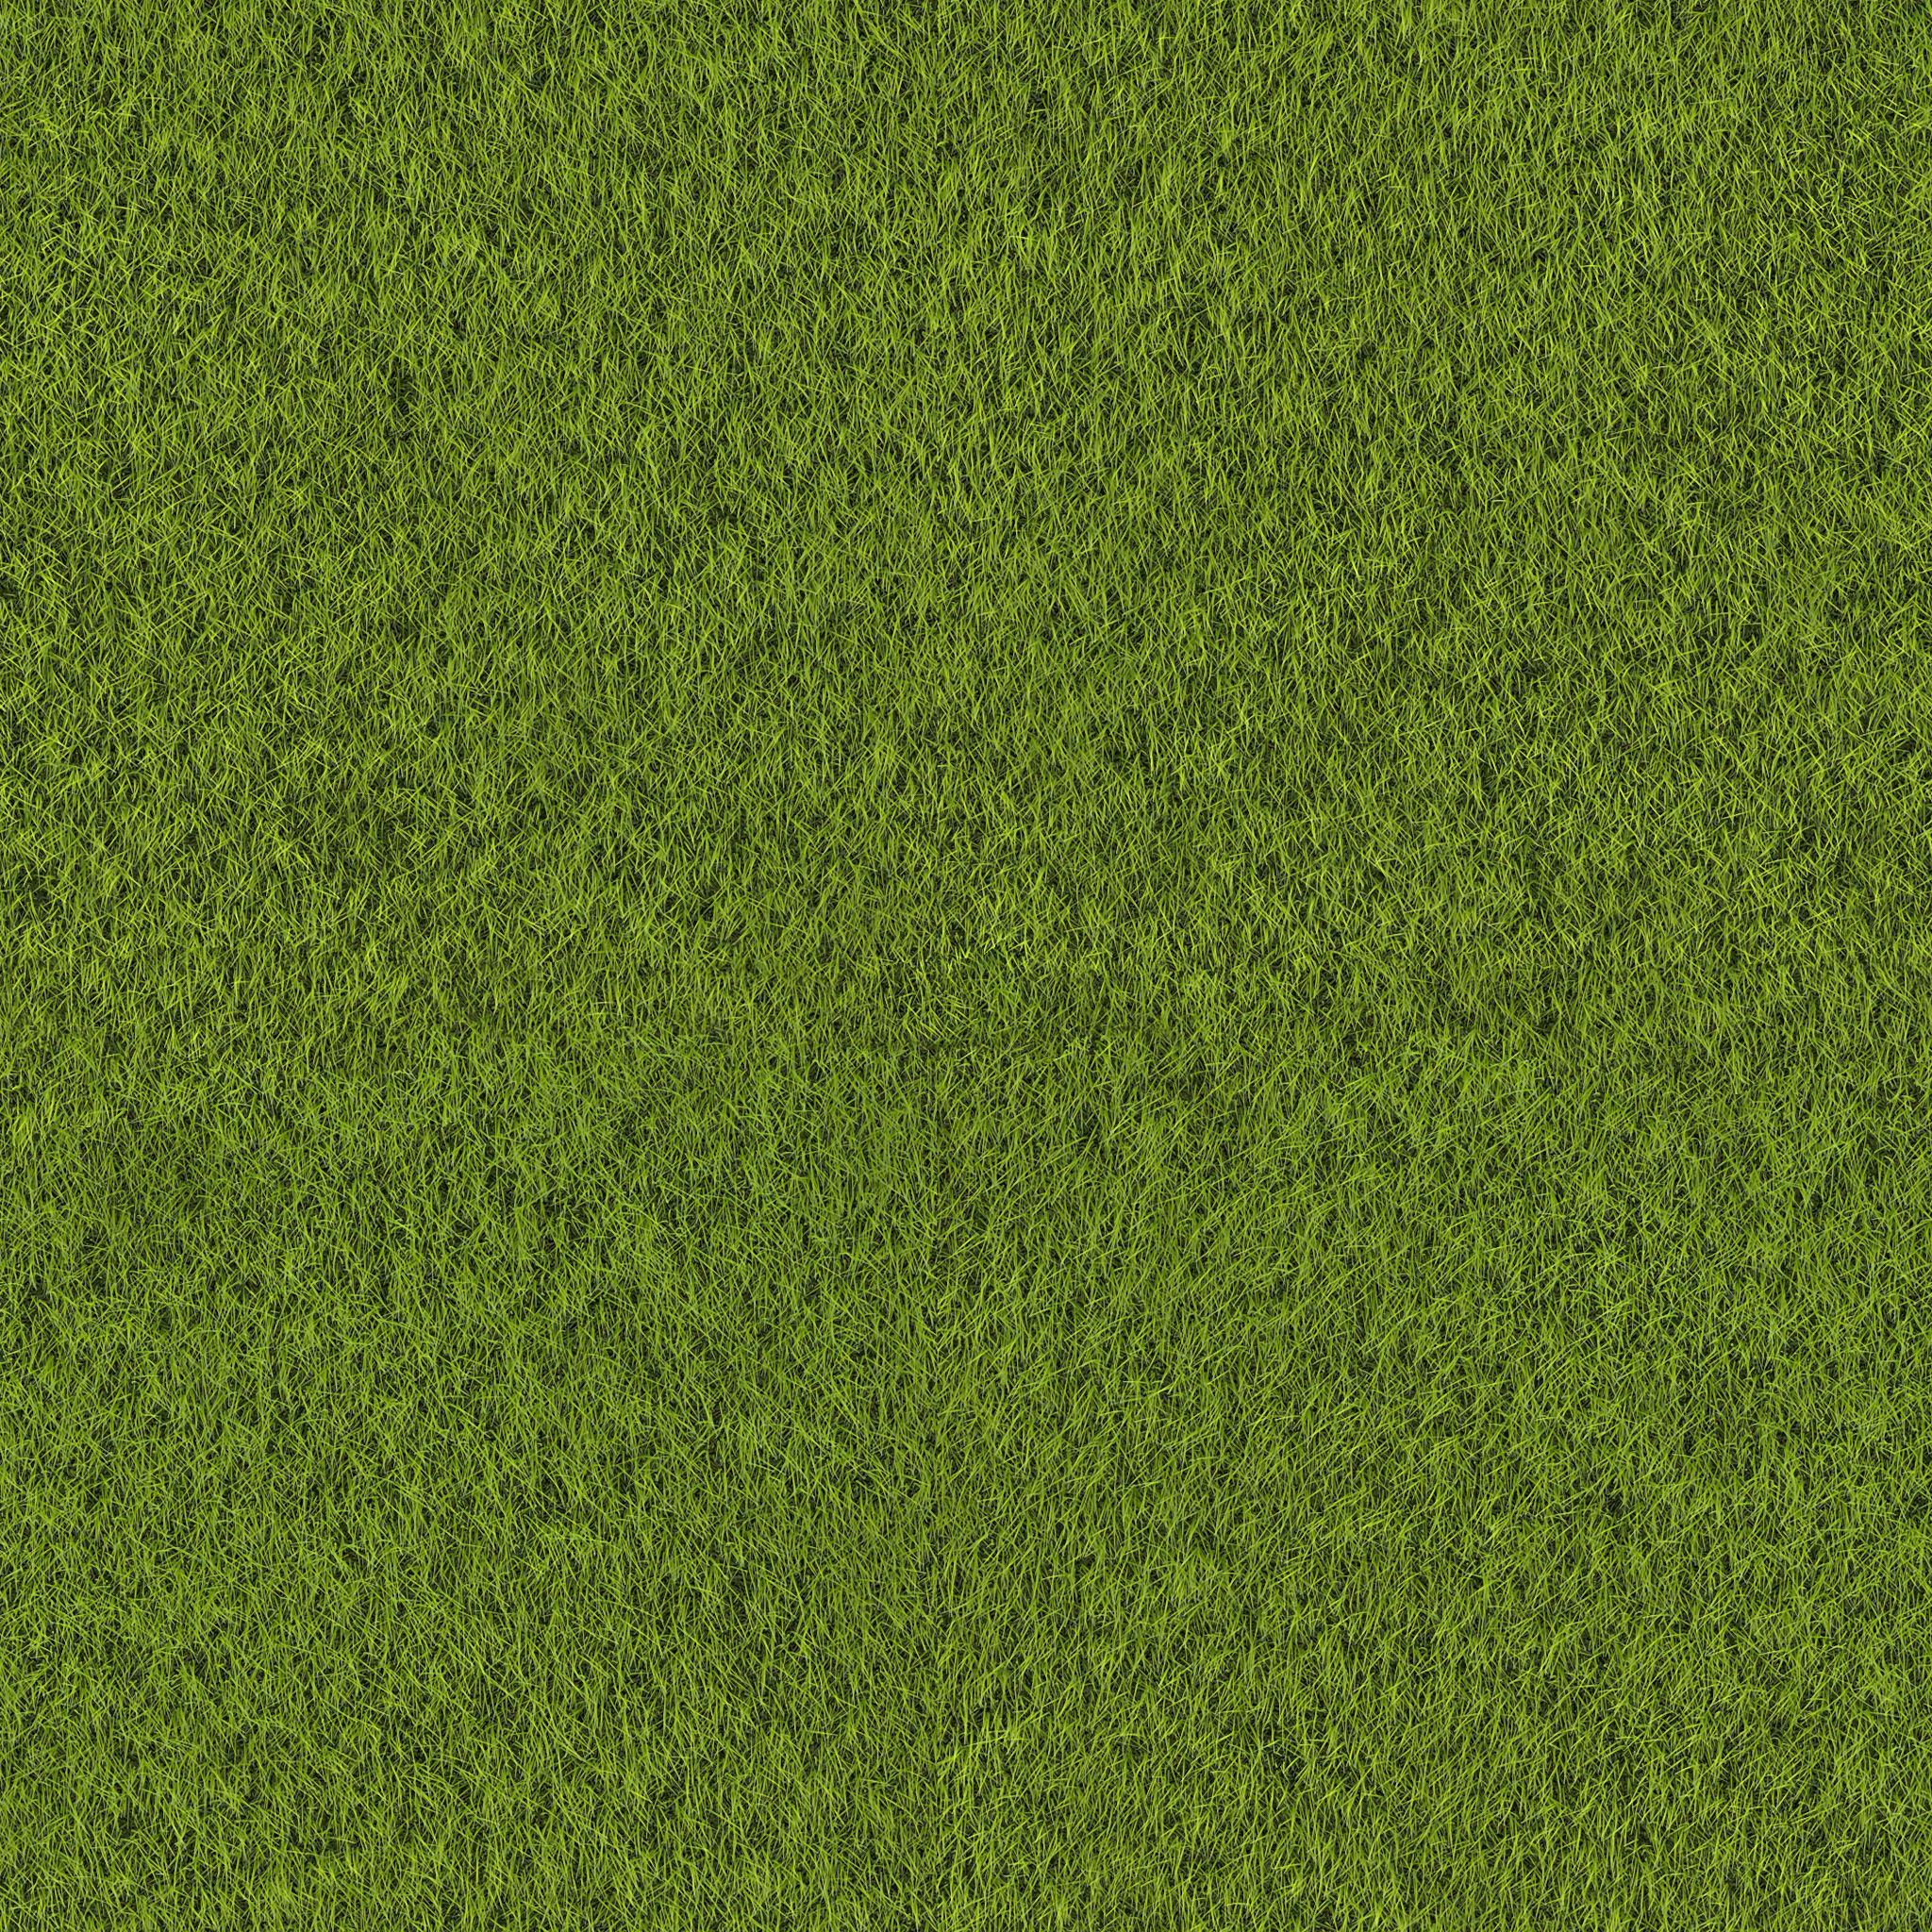 Image result for tileable grass texture | Theme: Corrupted ...